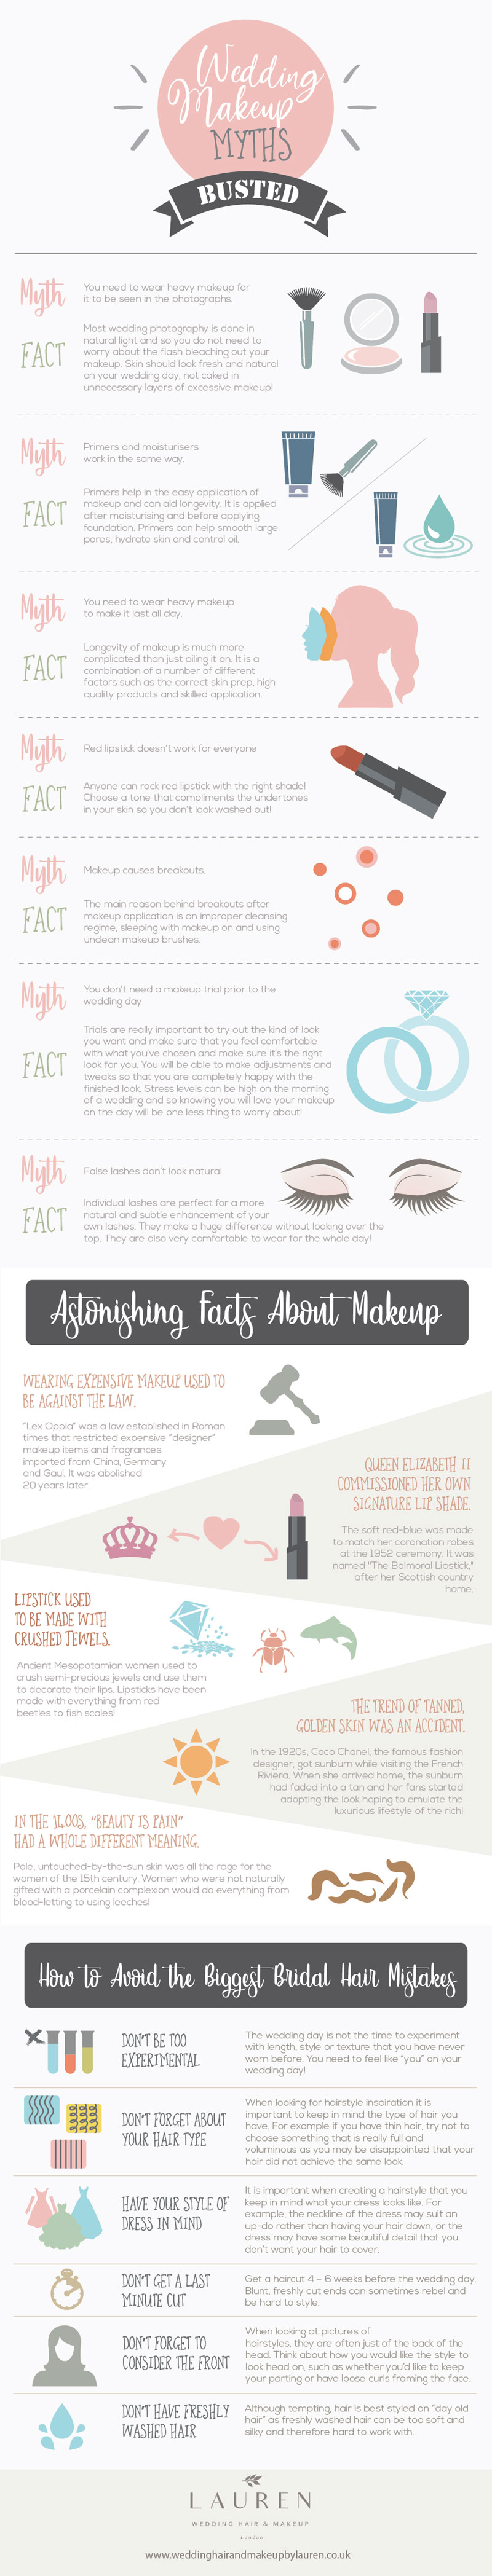 Wedding Hair and Makeup Myths Busted